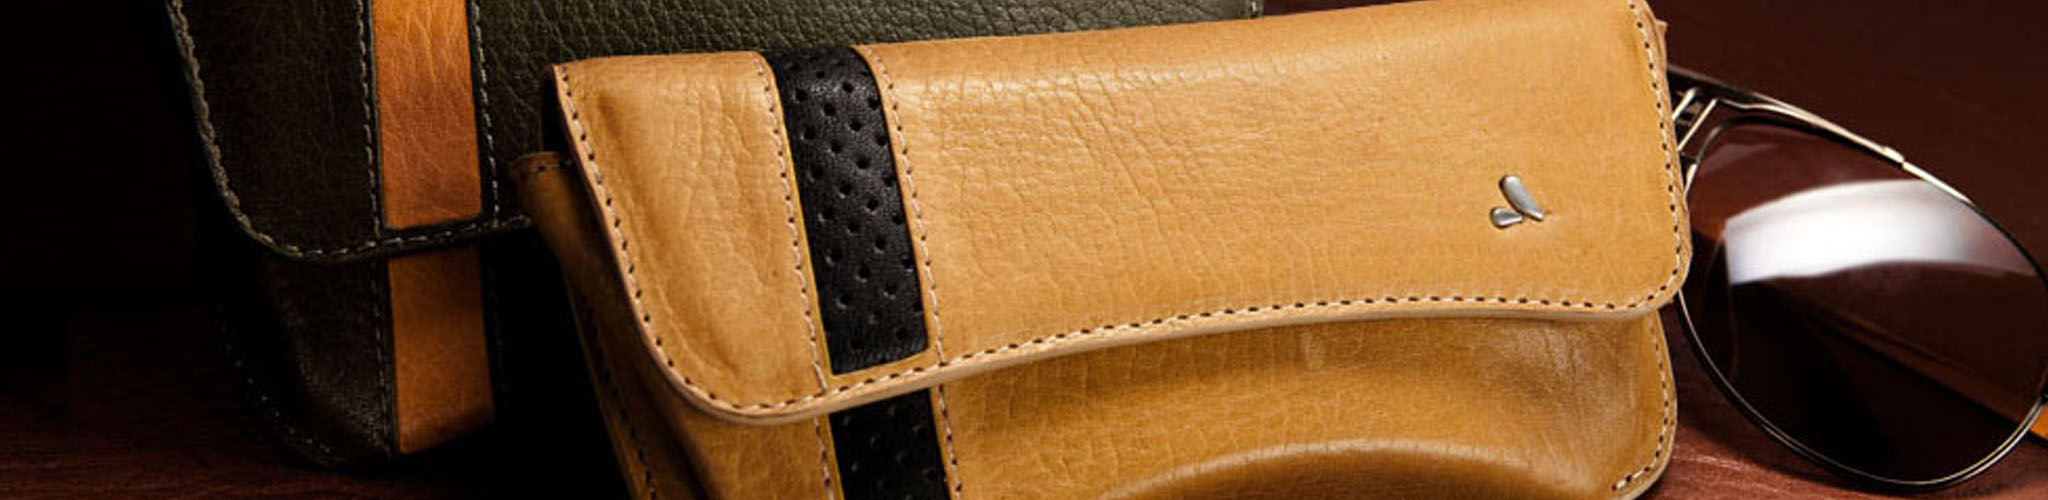 Unique Premium leather goods